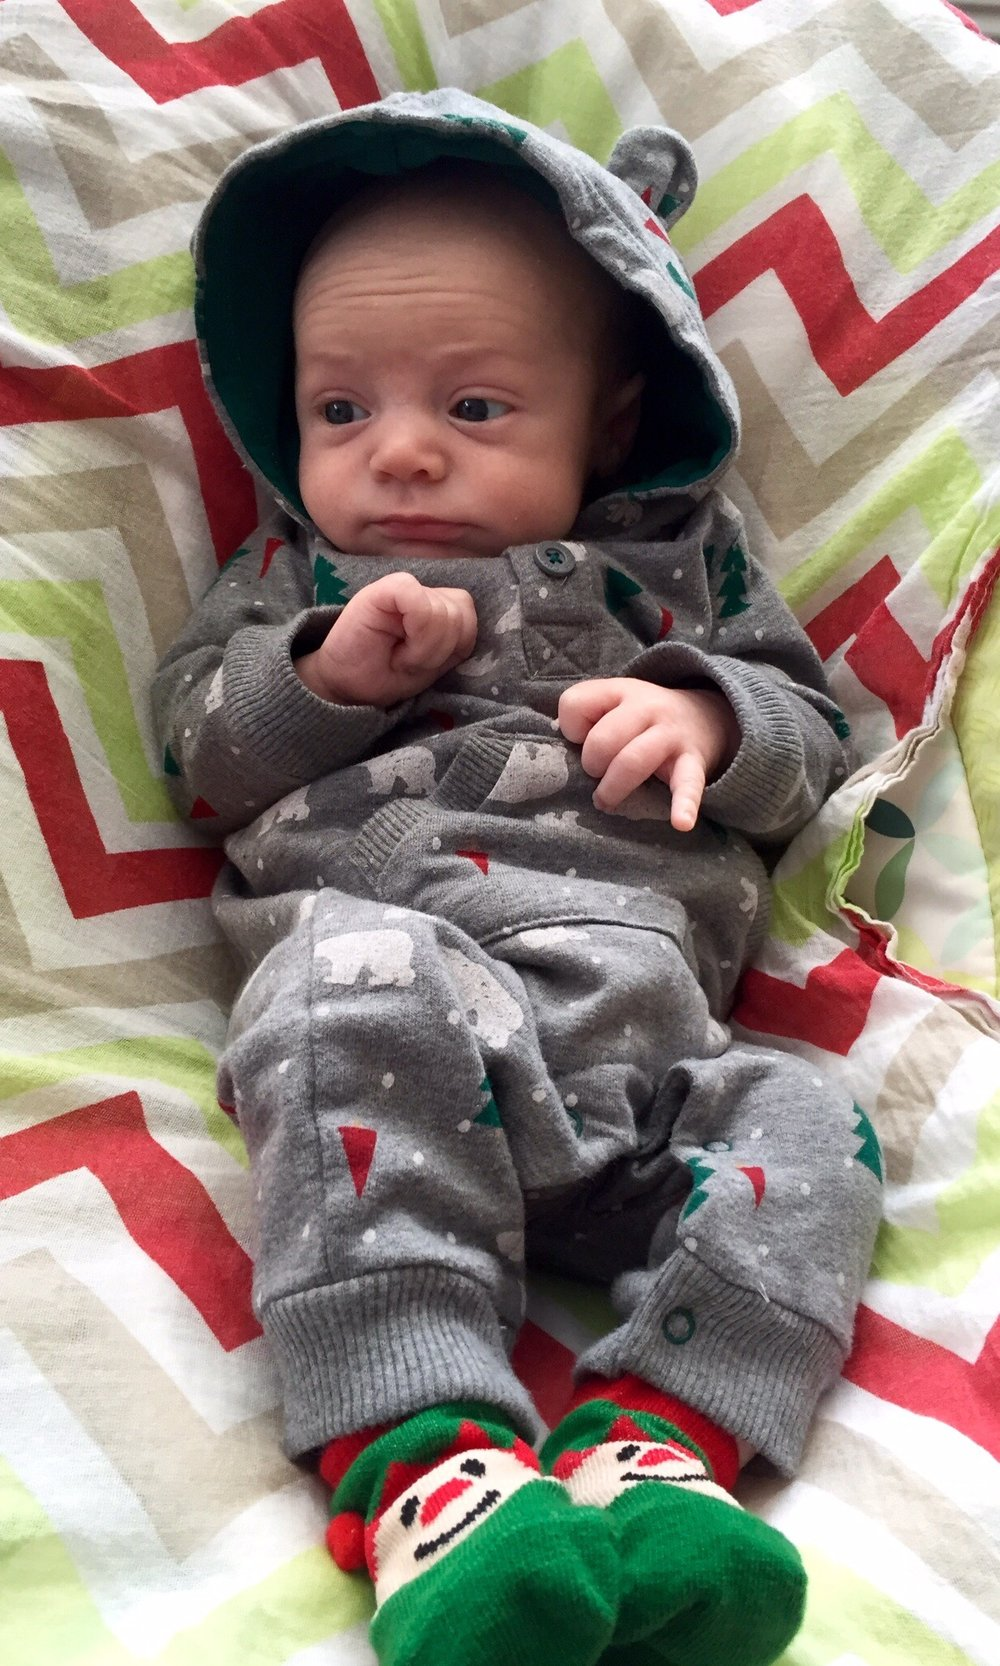 Julian, 1 month old, ready for Christmas